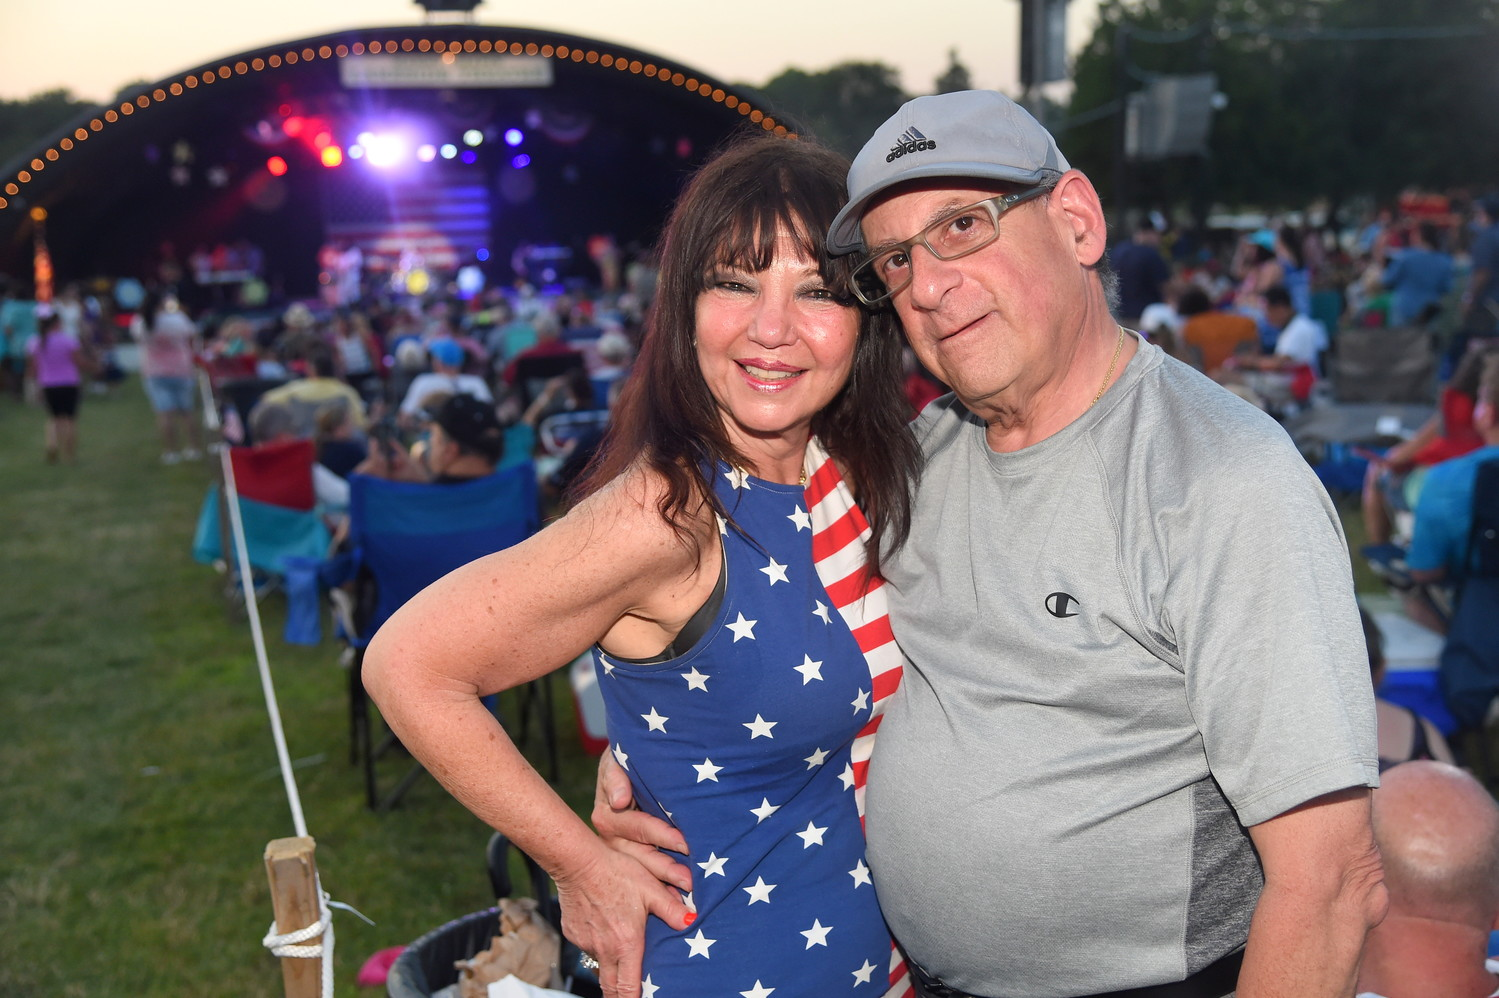 Sharon and Howard Fields, of Merrick, watched the fireworks display.